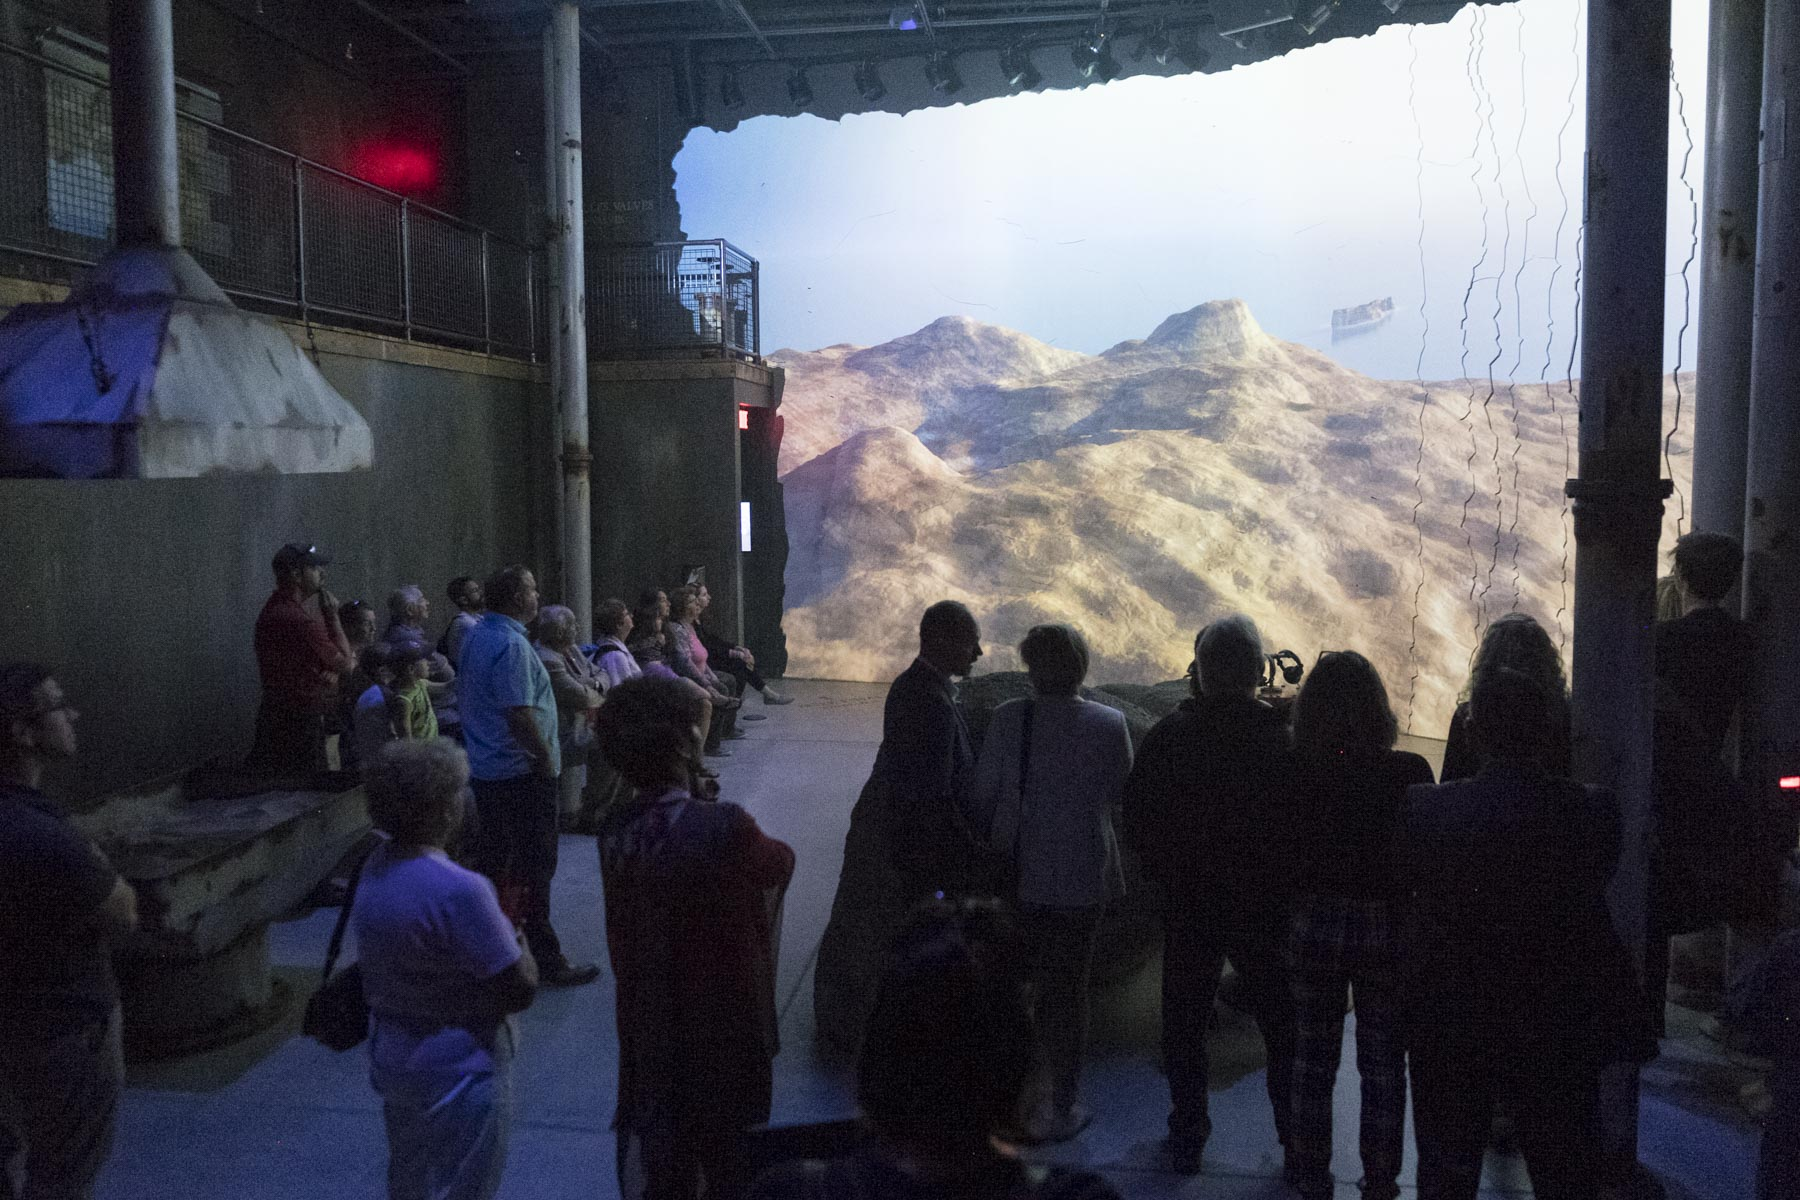 The Tektonik interactive exhibition is a multimedia experience that combines geology, history and new technologies.